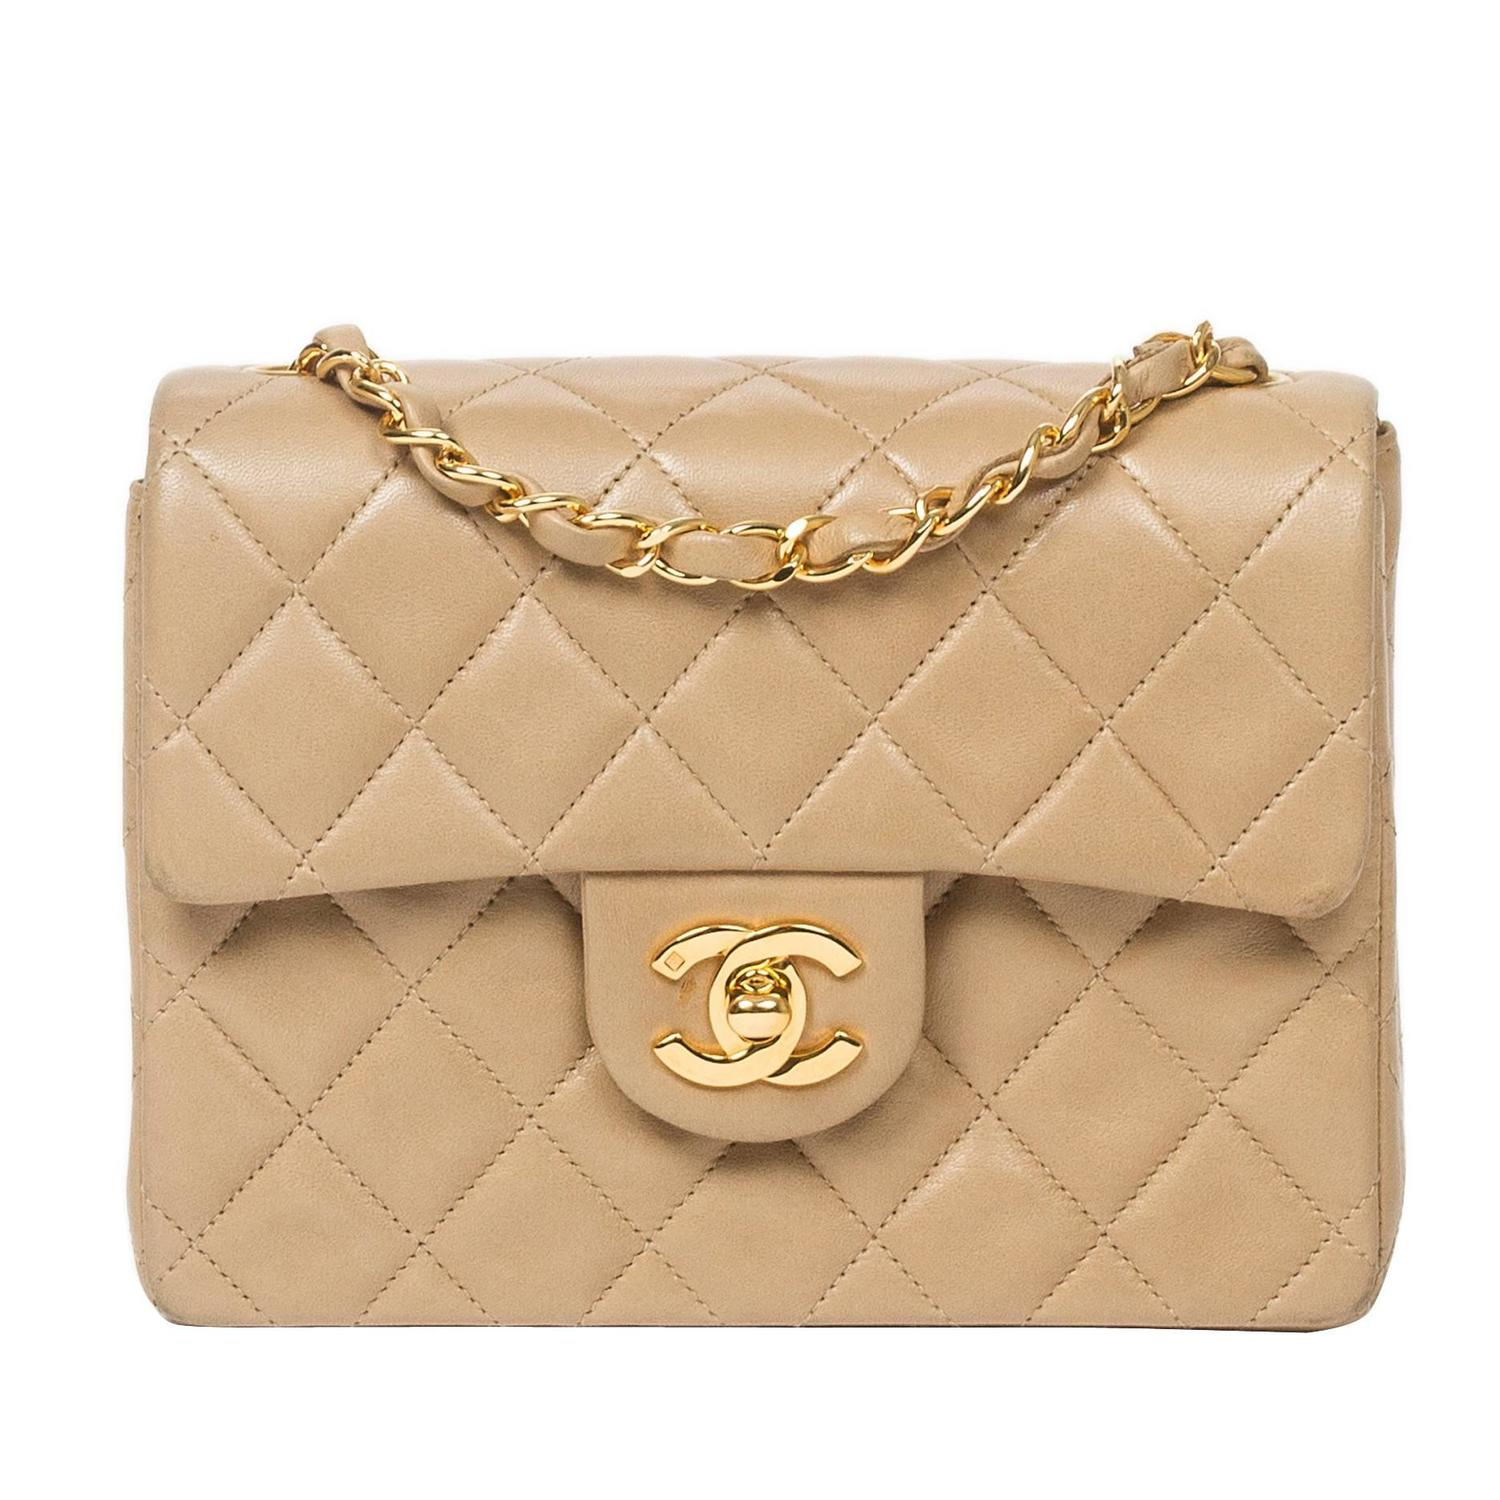 quilted kelly and nude smooth purse bags chain shoulder metal en detail soft leather crossbody handbags italian index women mini gold quilt clutch light